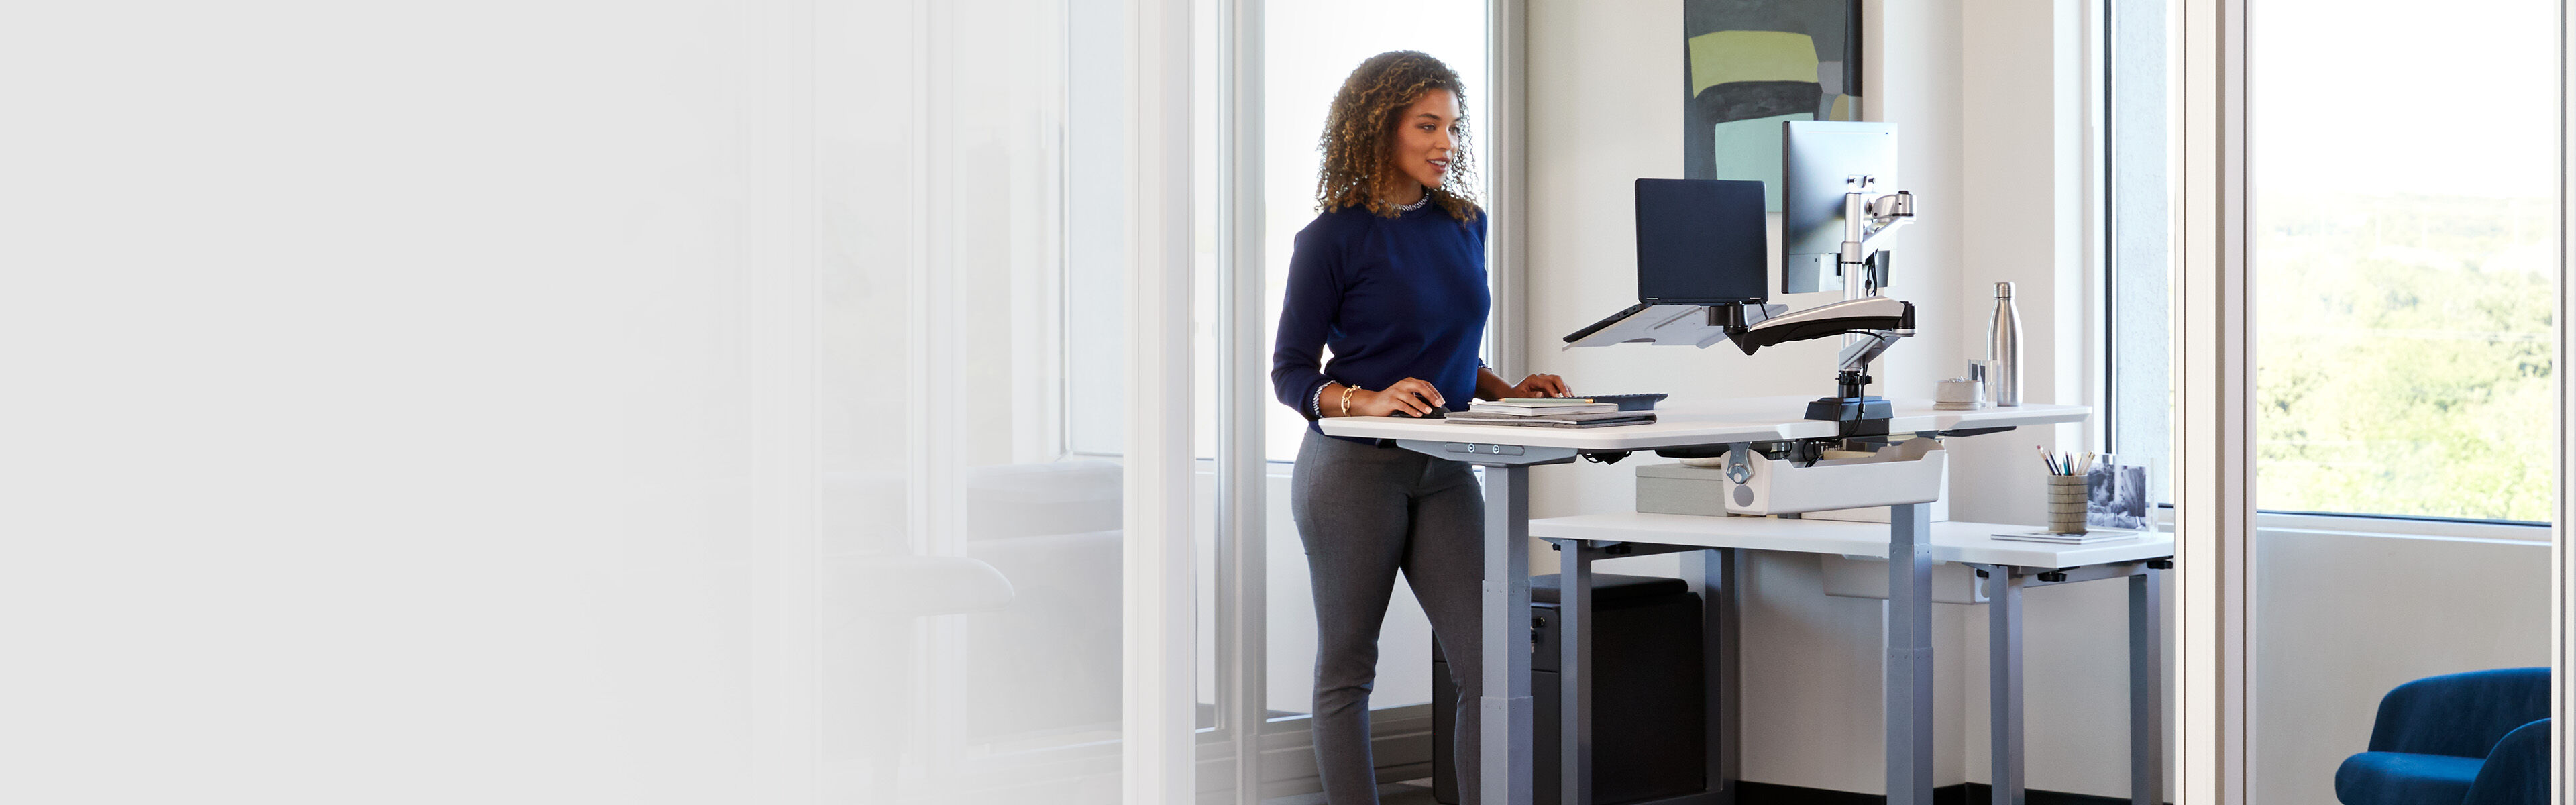 professional working at electric standing desk in office setting